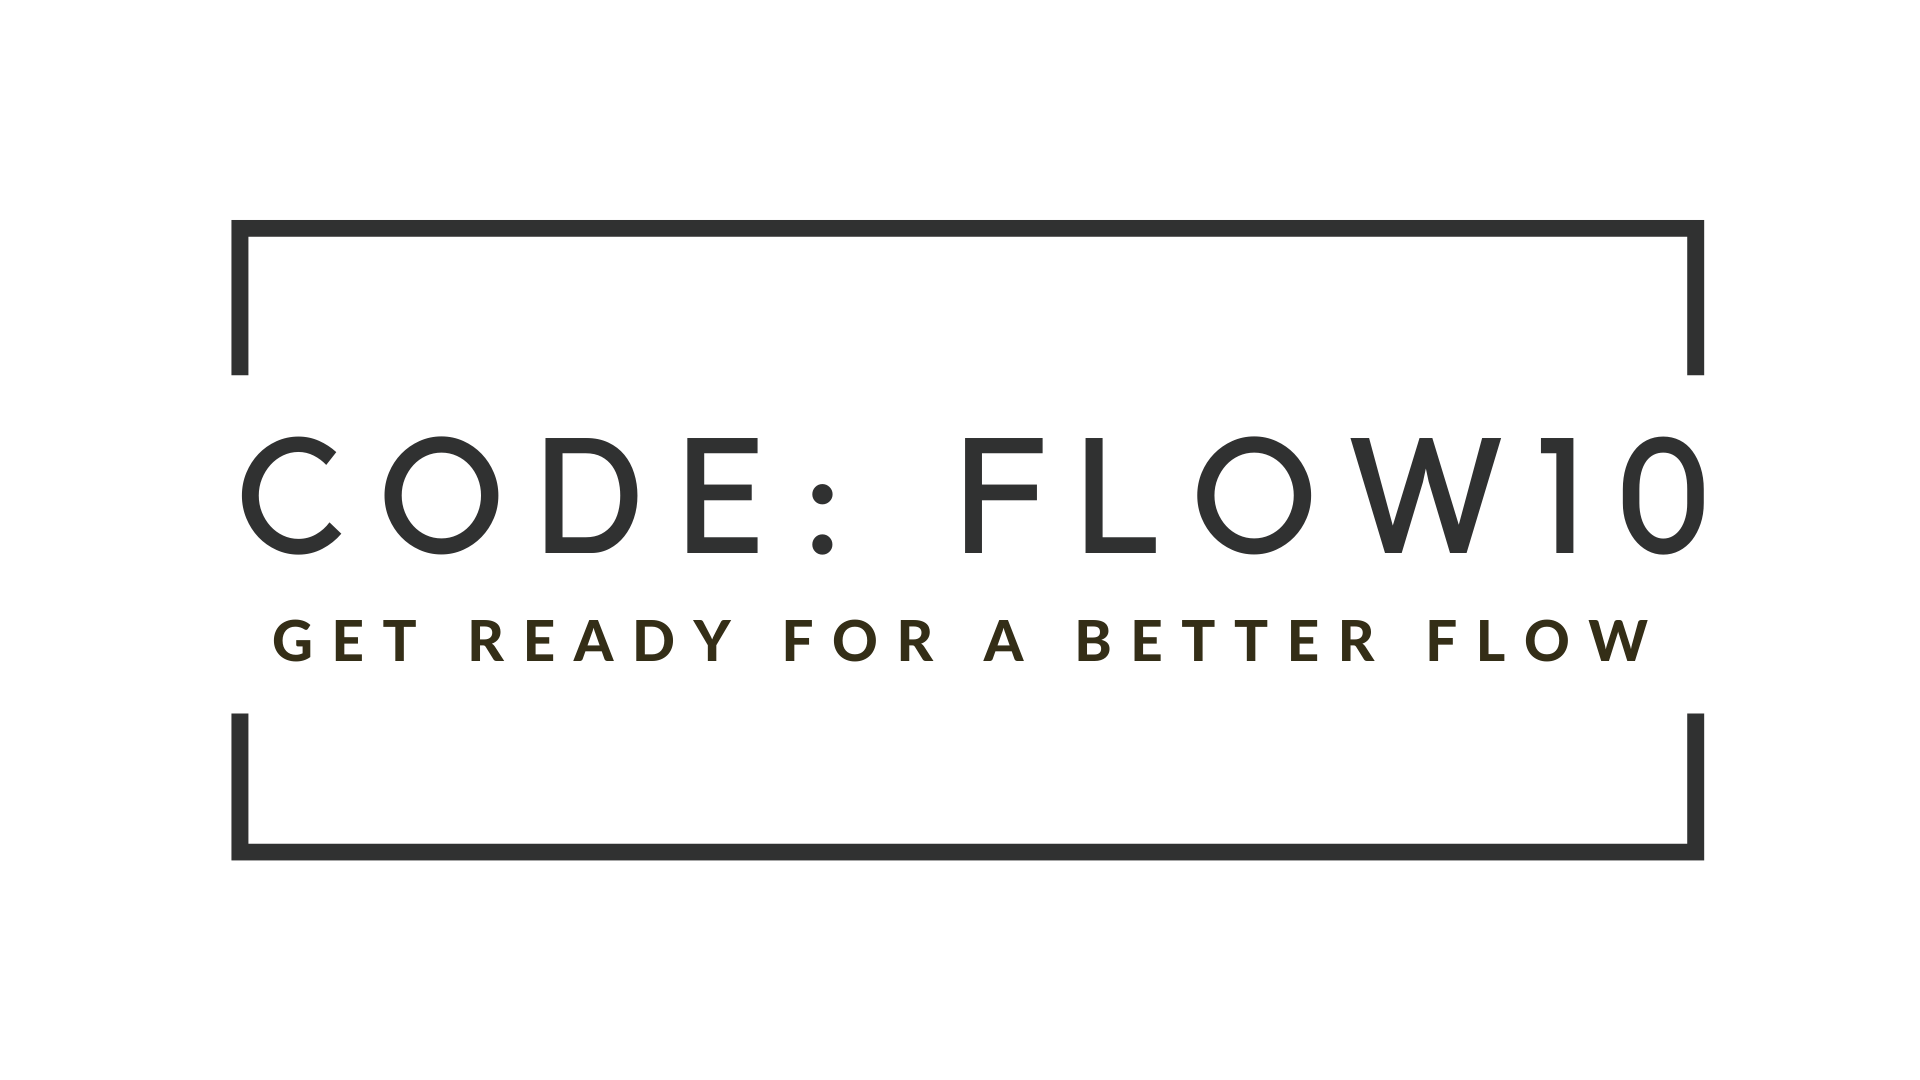 Your coupon code is FLOW10